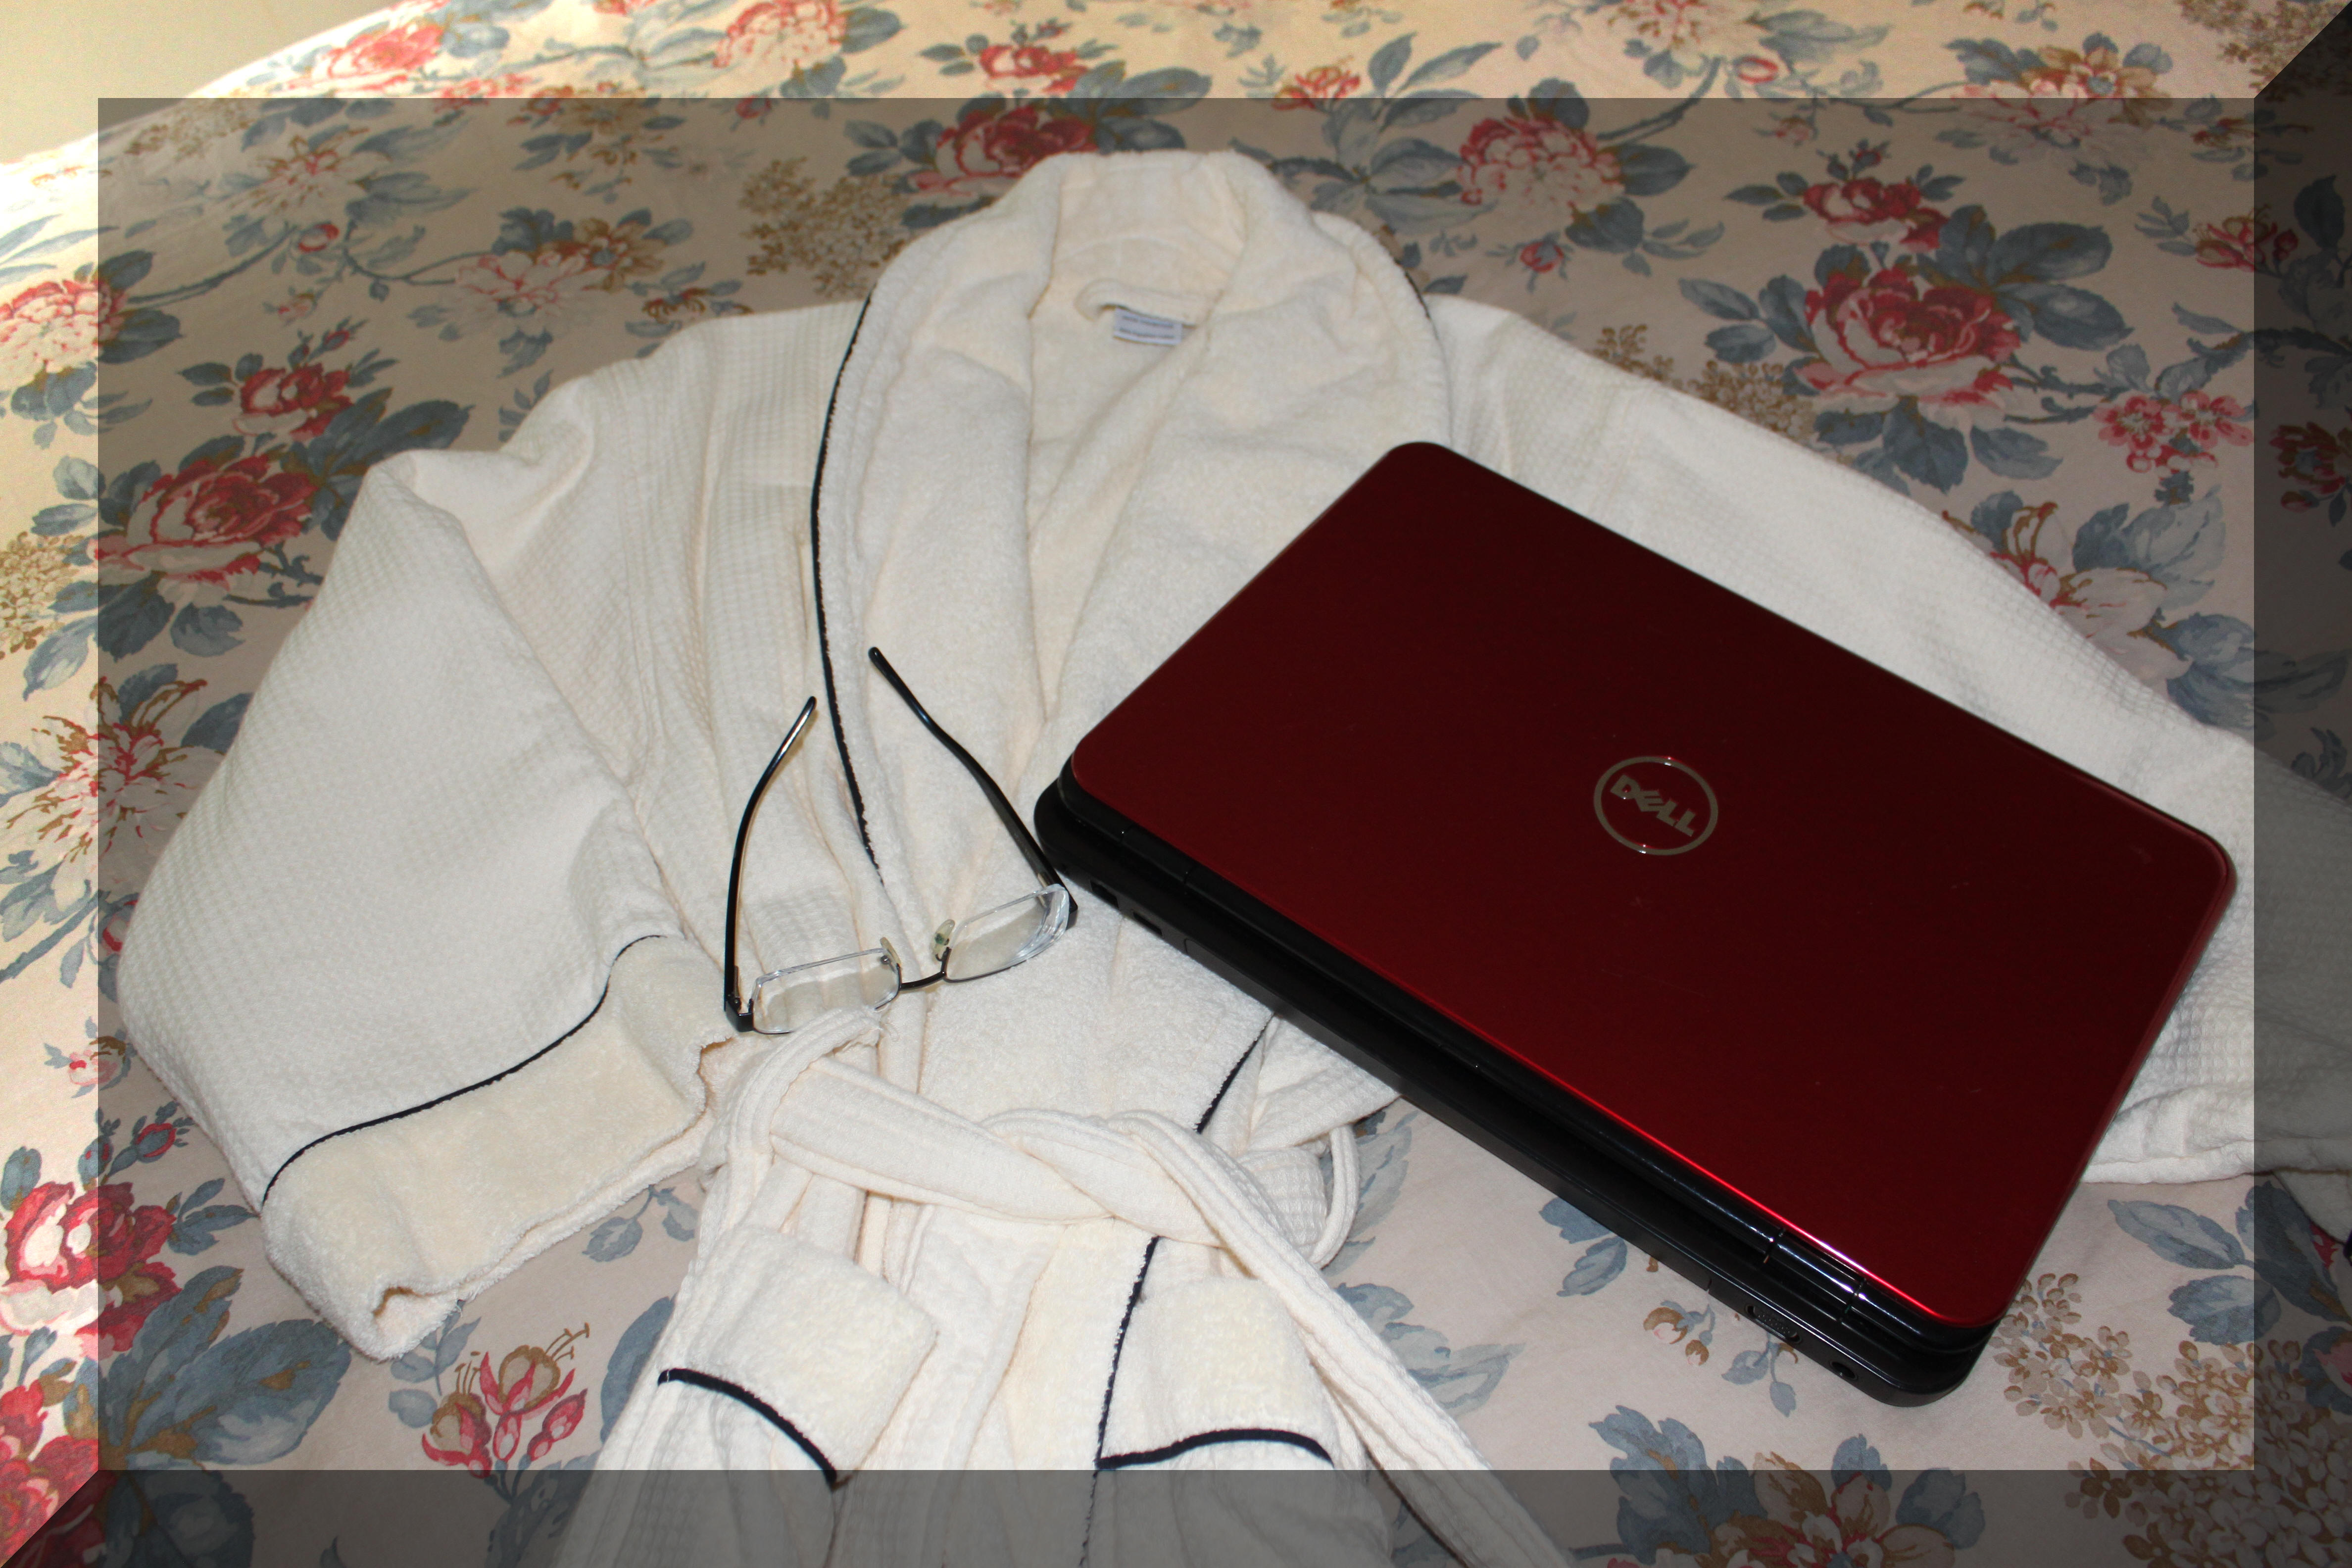 Robe and Laptop